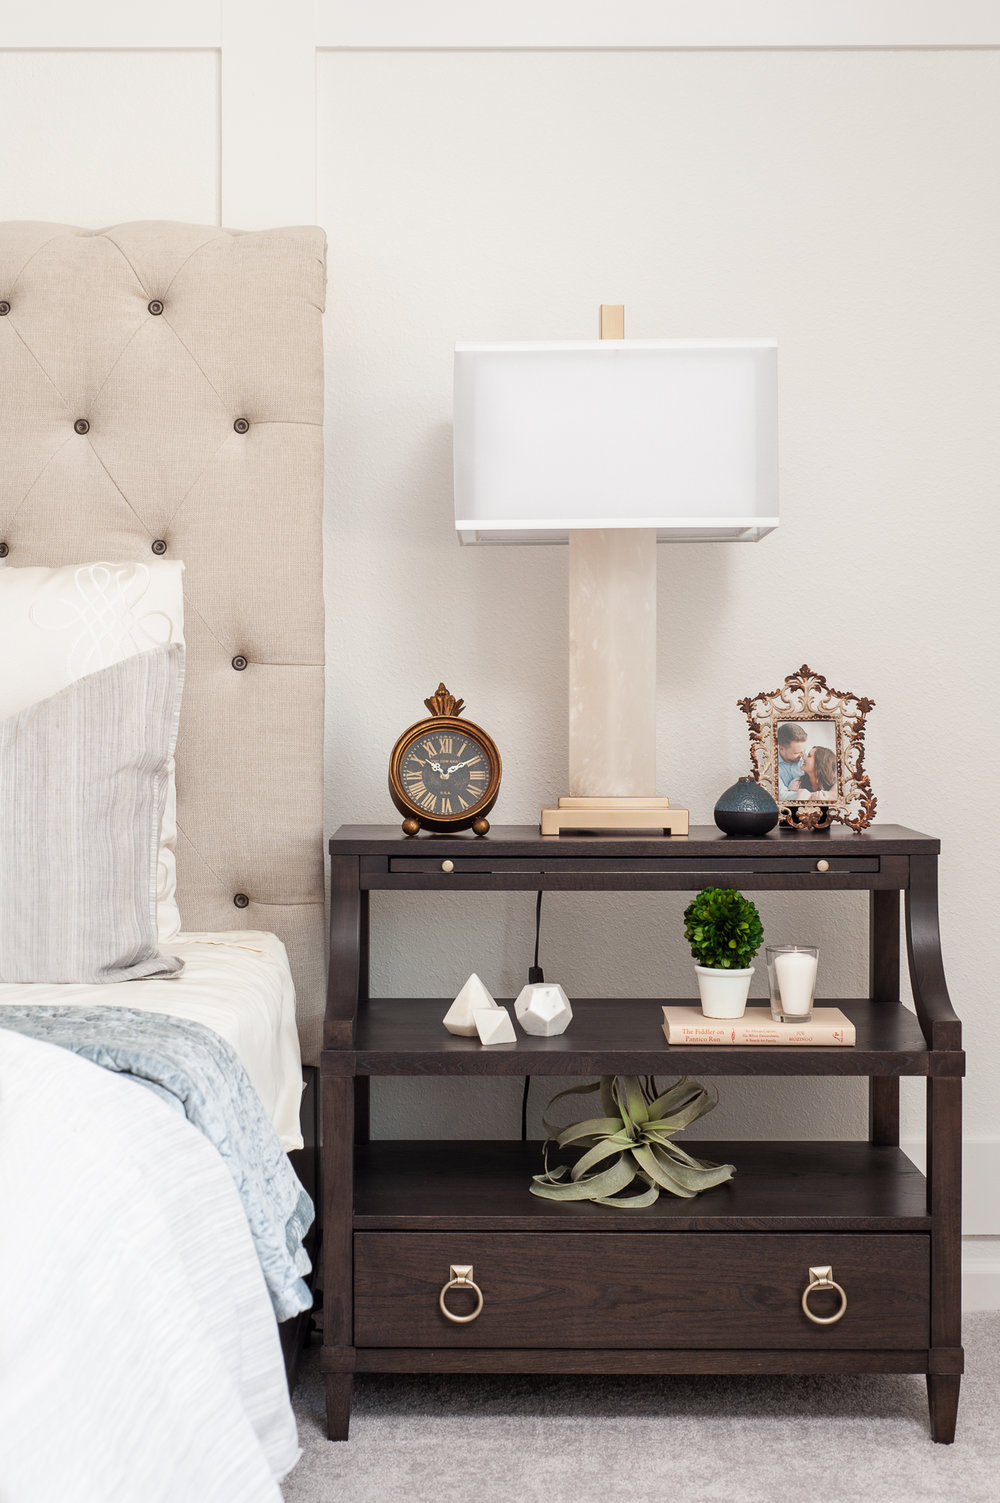 Micamy_Interior Designer_Design_Interior_Model_Merchandising_Owners_Suite_Universal_Furniture_Traditional_Transitional_Nightstand_Styling_Uttermost_Accessories.jpg